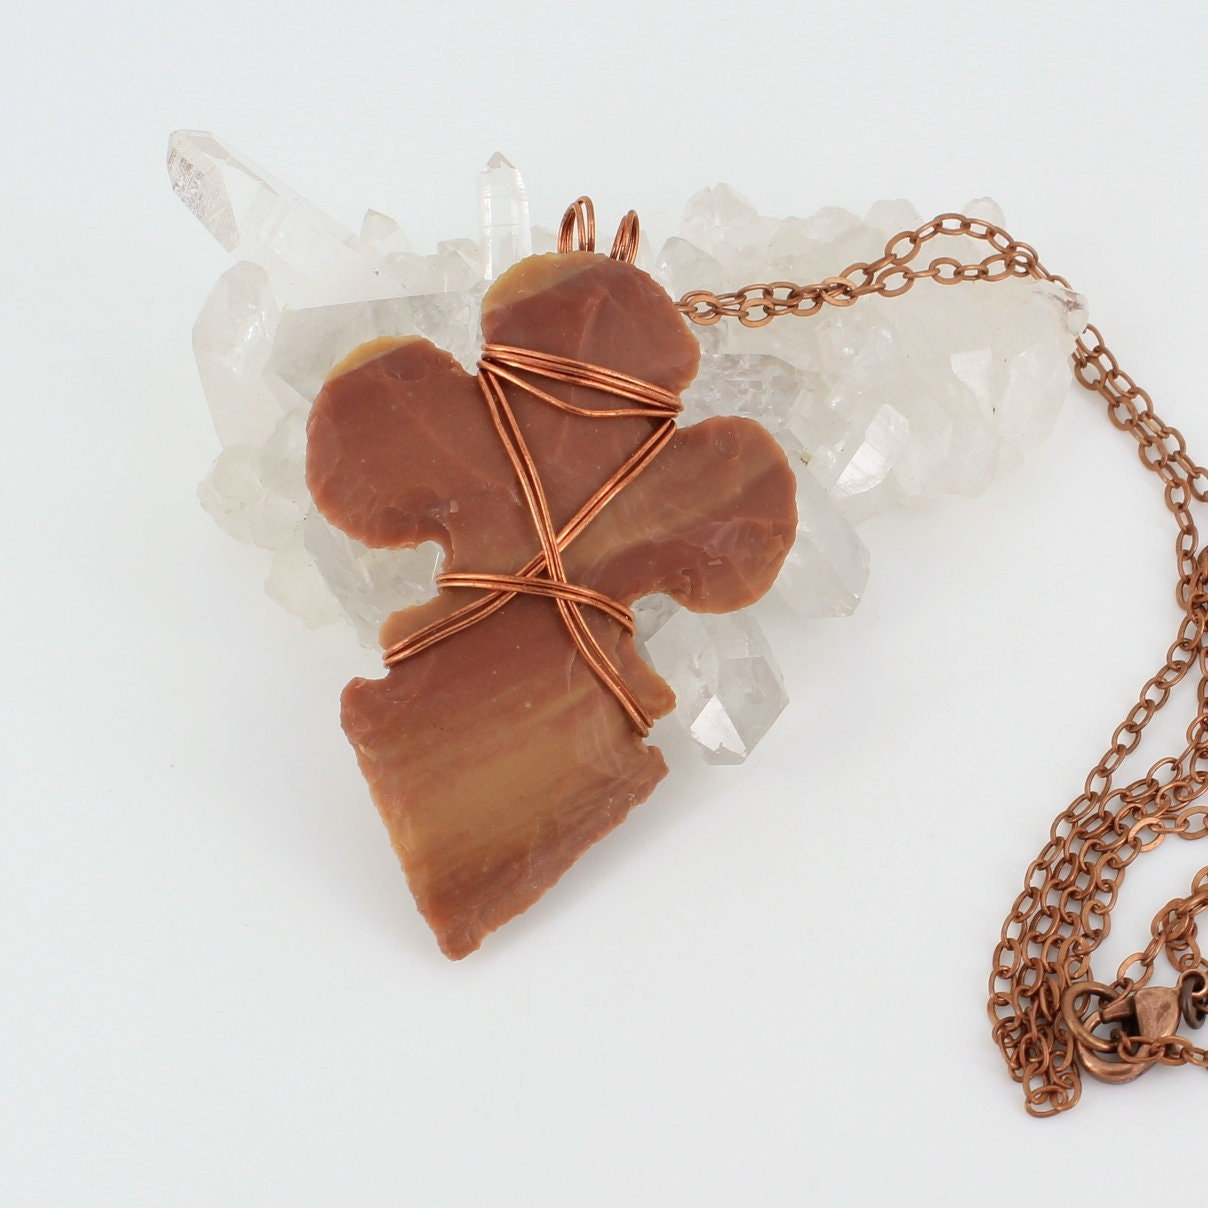 Fleur,de,Lis,Wire,Wrapped,Arrowhead,Necklace,on,Copper,Plated,Chain,Jewelry,knapped_jasper,primitive_style,unisex_necklace,arrowhead_necklace,mens_necklace,wired_arrowhead,copper_wire_wrapped,Native_American,wirewrapped,locally_sourced,one_of_a_kind,Rusty_brown,fleur_de_lis,Brass,Stone